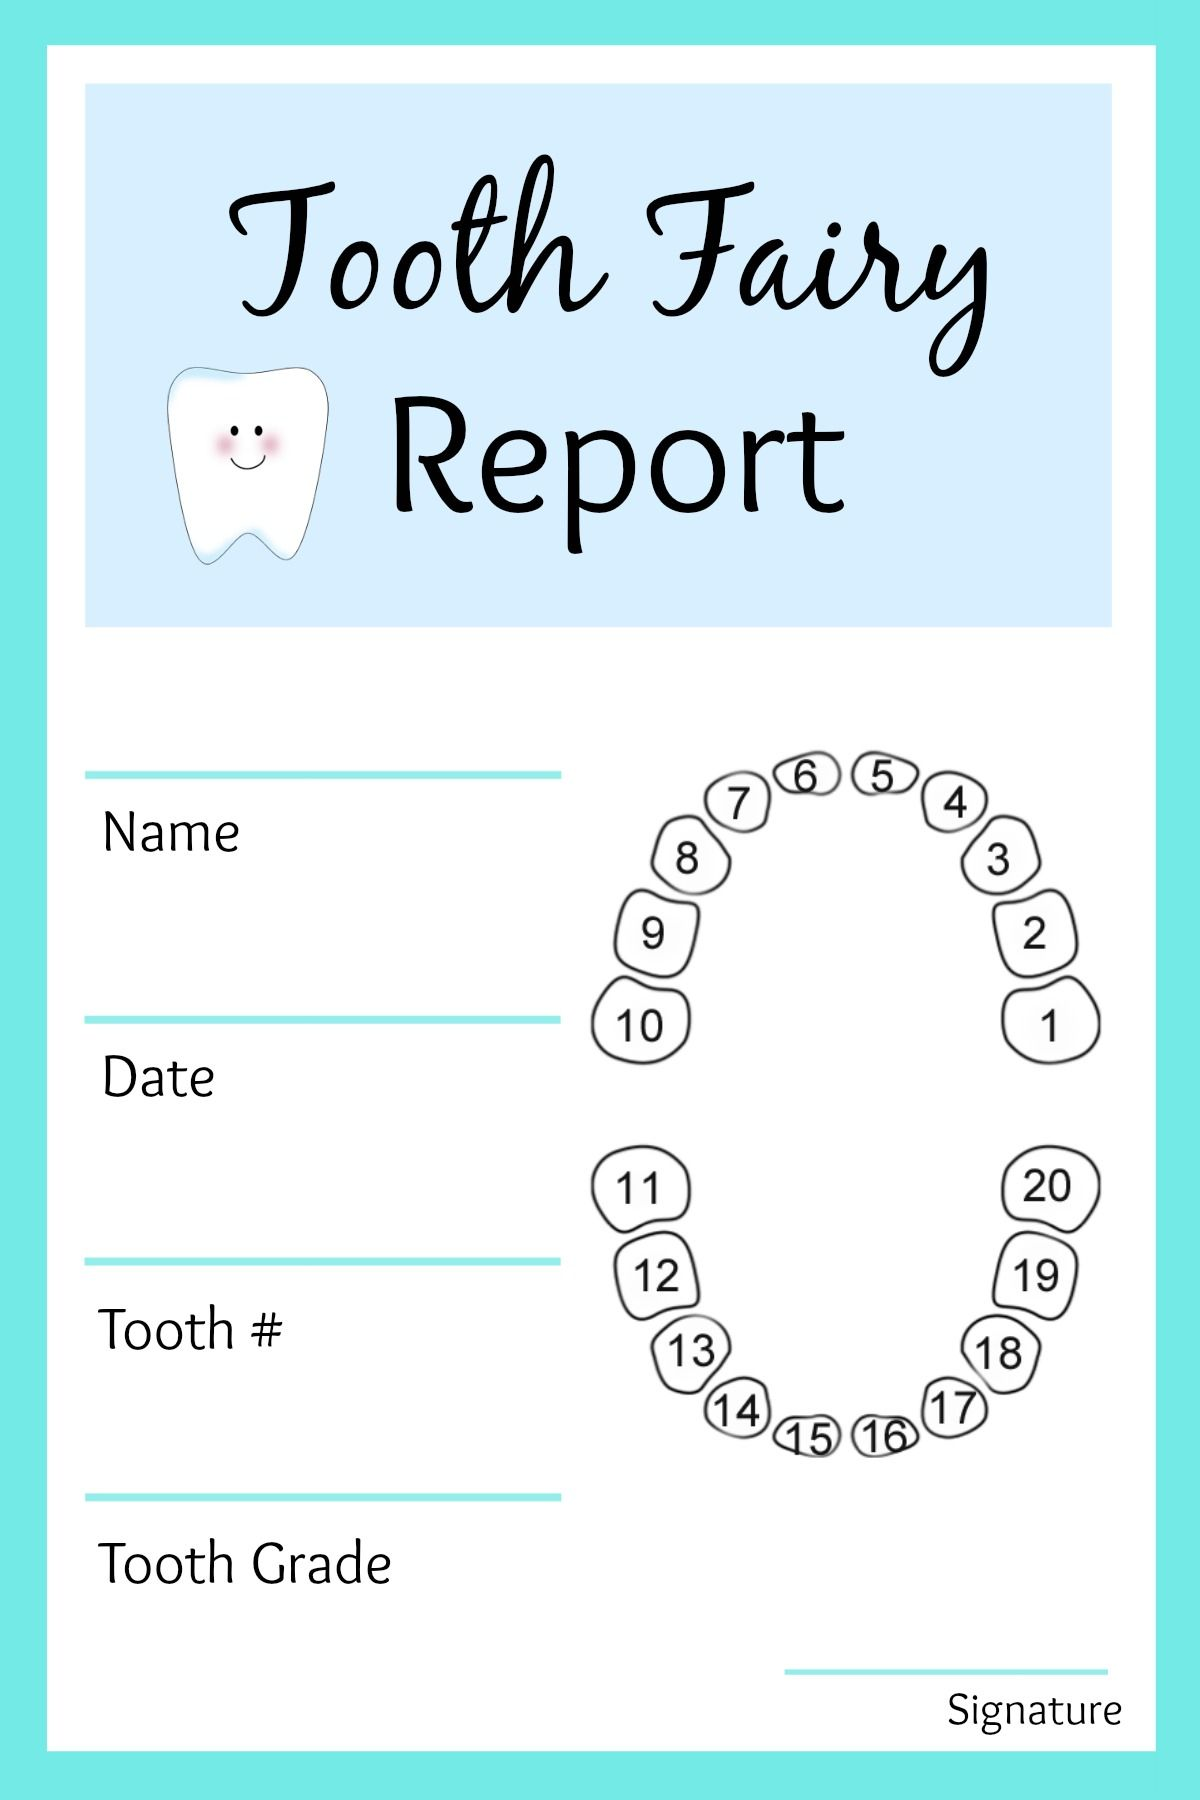 Www Thesuburbanmom Com Wp Content Uploads 2014 06 Tooth Fairy Report Blue Jpg Tooth Fairy Letter Tooth Fairy Certificate Tooth Fairy Letter Template